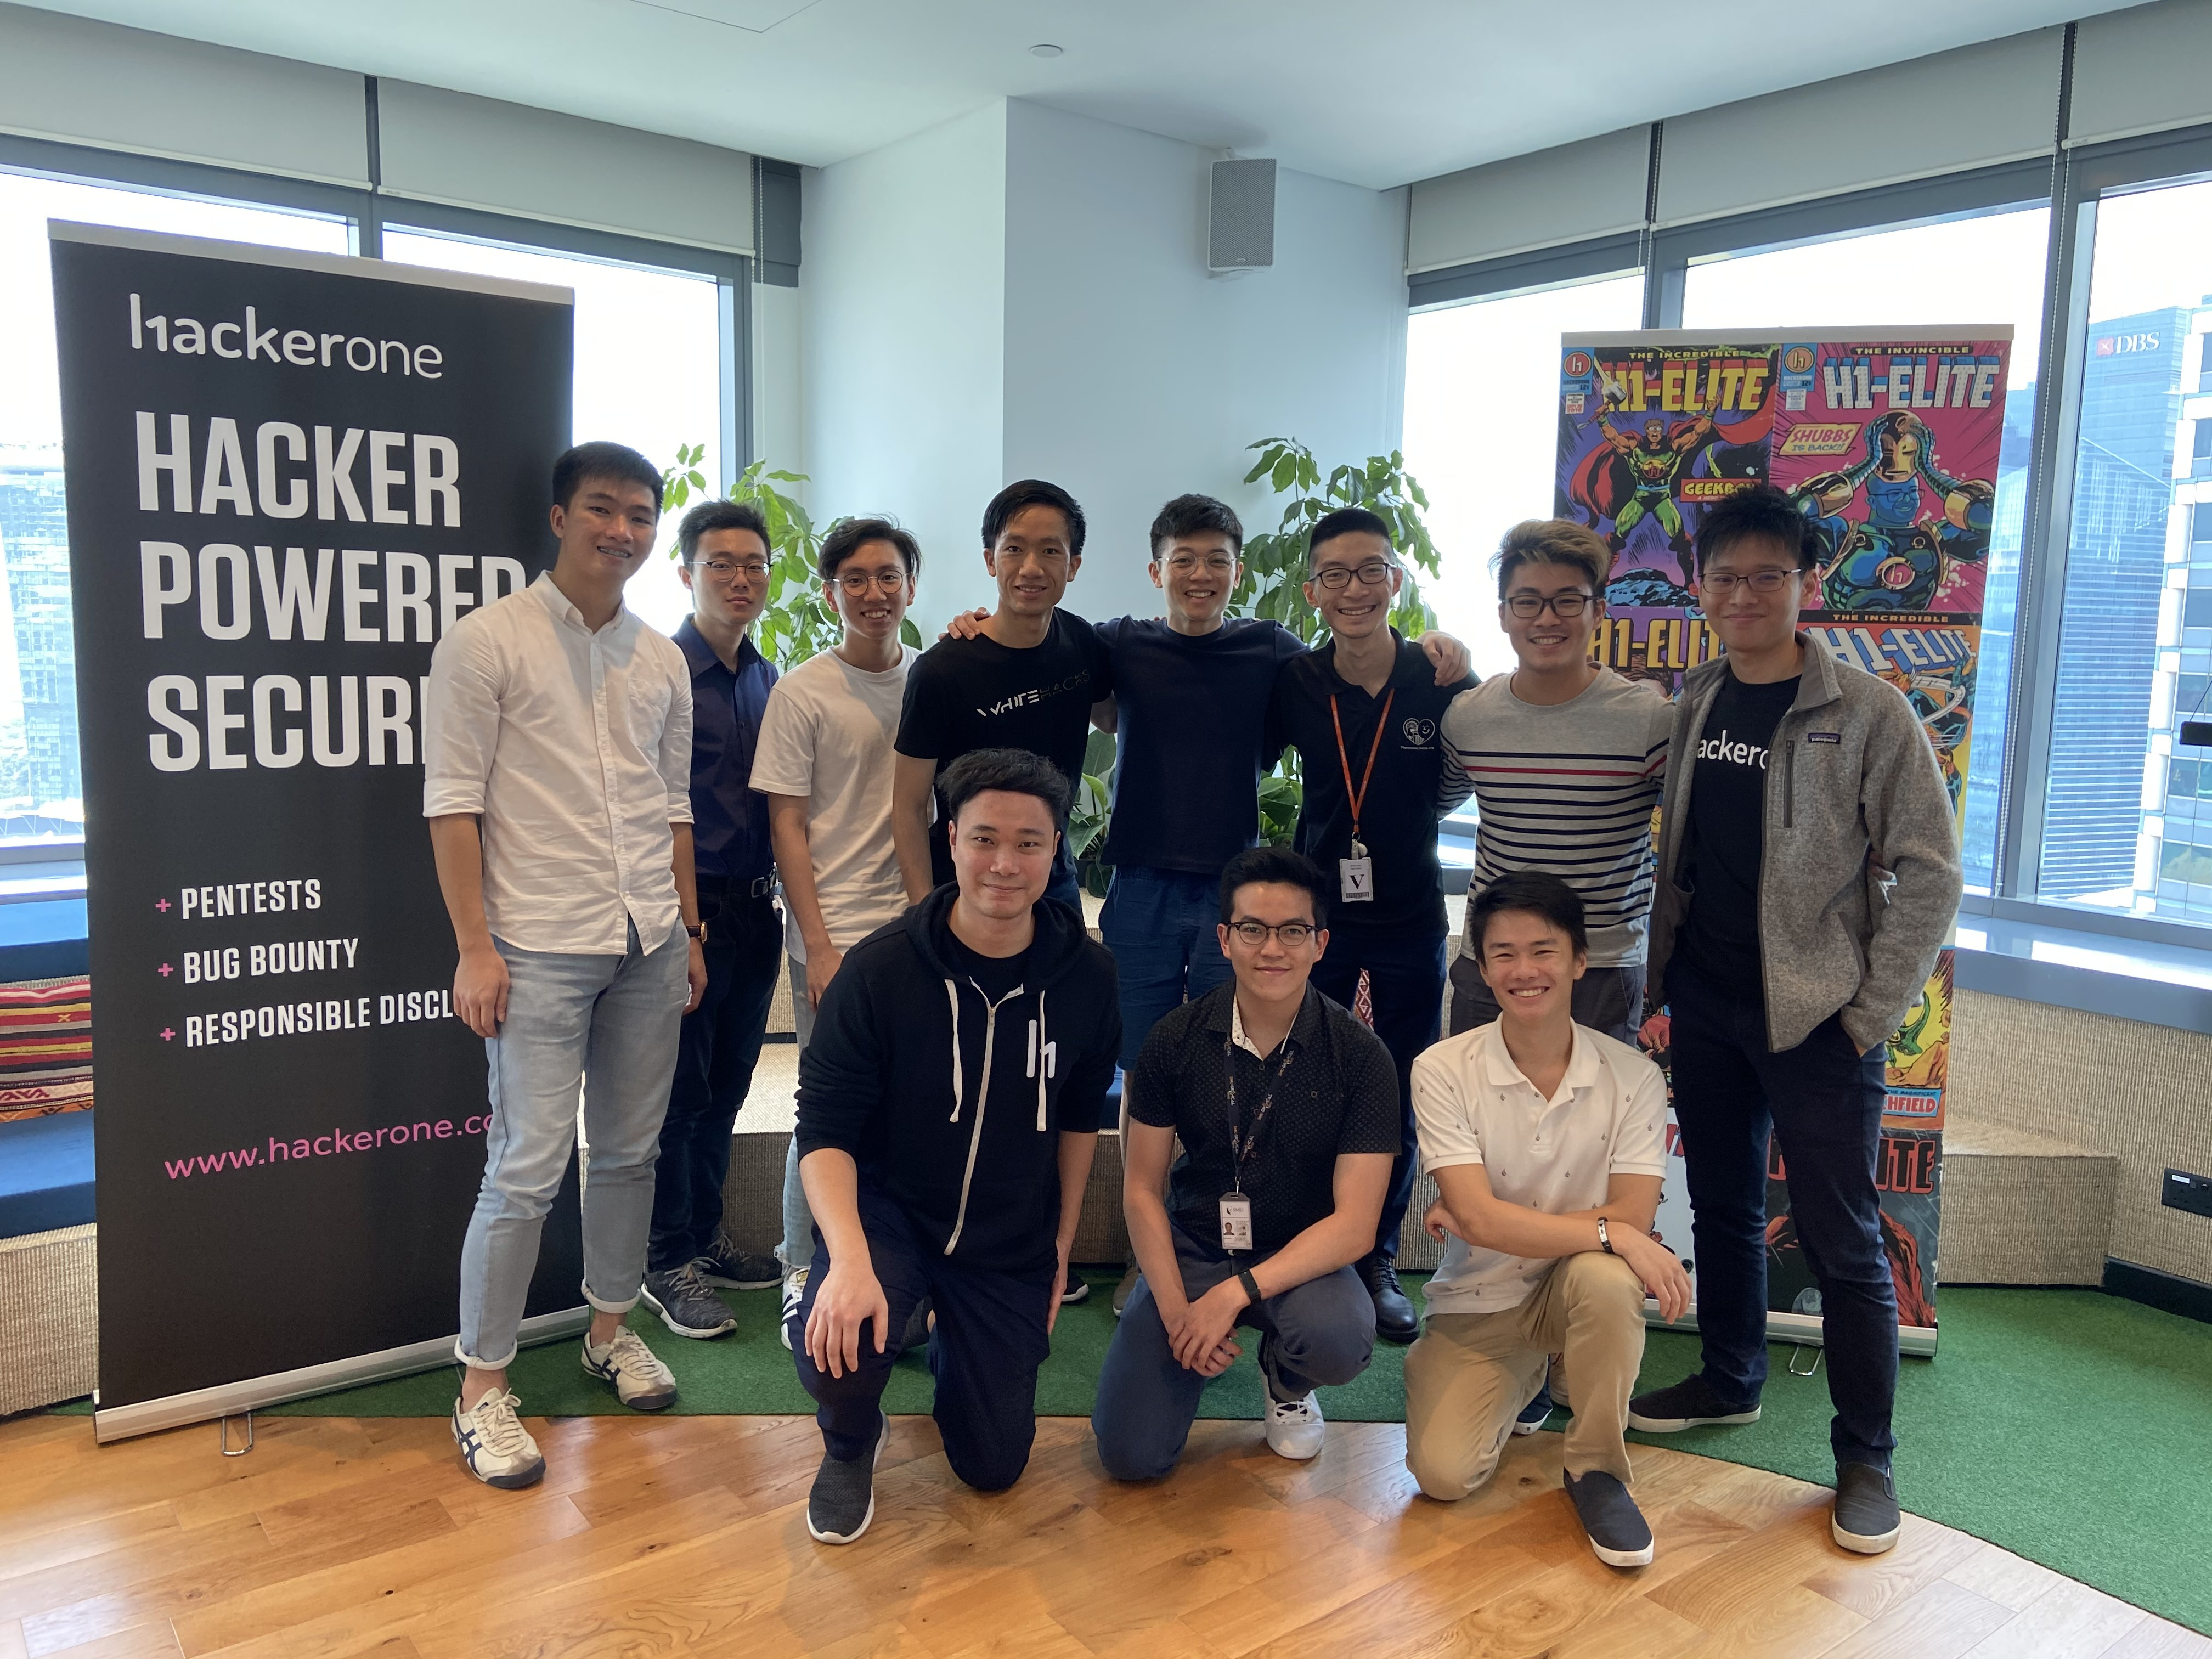 Photo Caption: Prior to COVID-19, a group of students from the WhiteHats Society at Singapore Management University (SMU) visited with HackerOne to learn more about ethical hacking and HackerOne, share knowledge, and educate the next generation of cyber defenders.